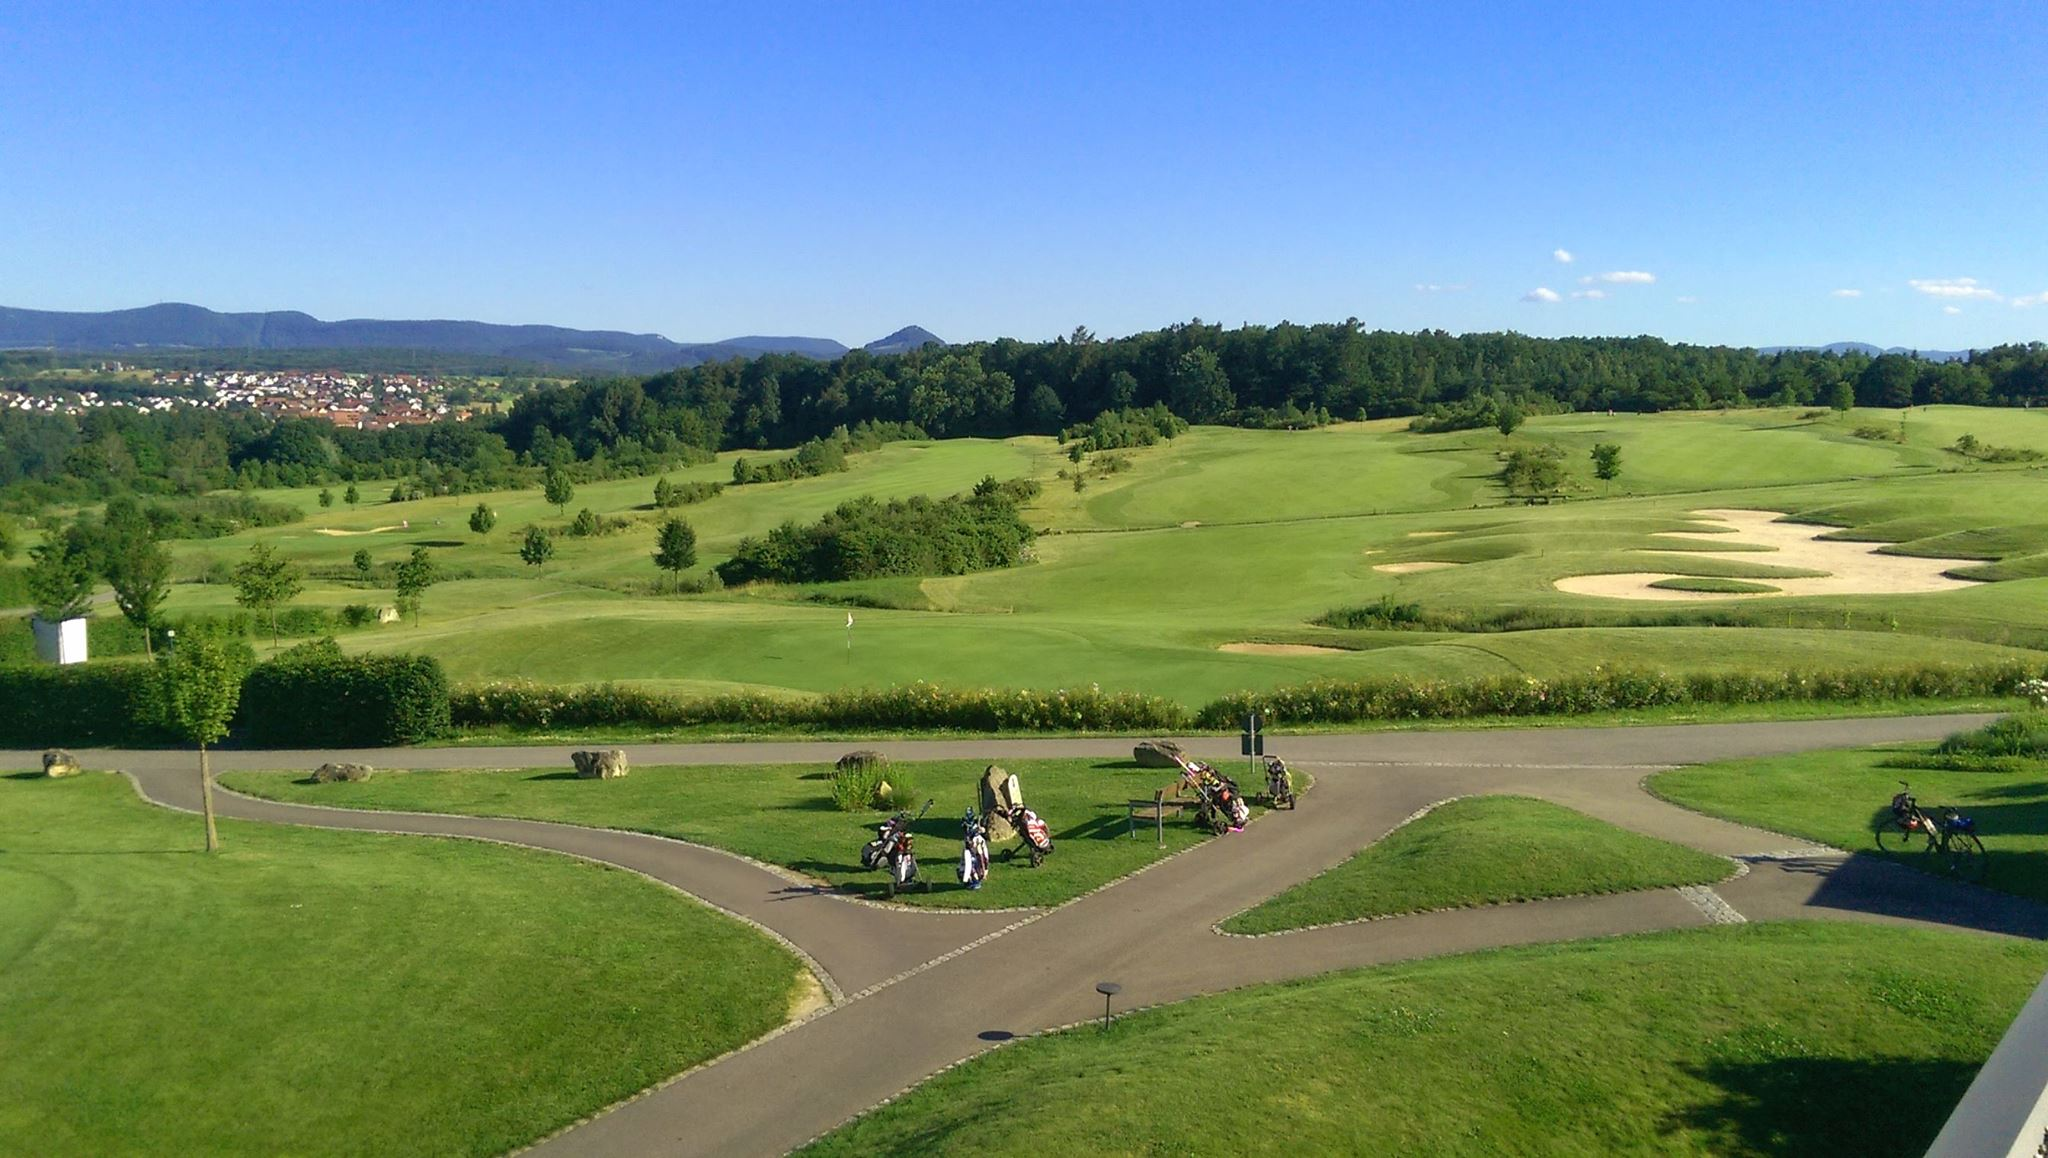 Overview of golf course named Golf Club Hammetweil